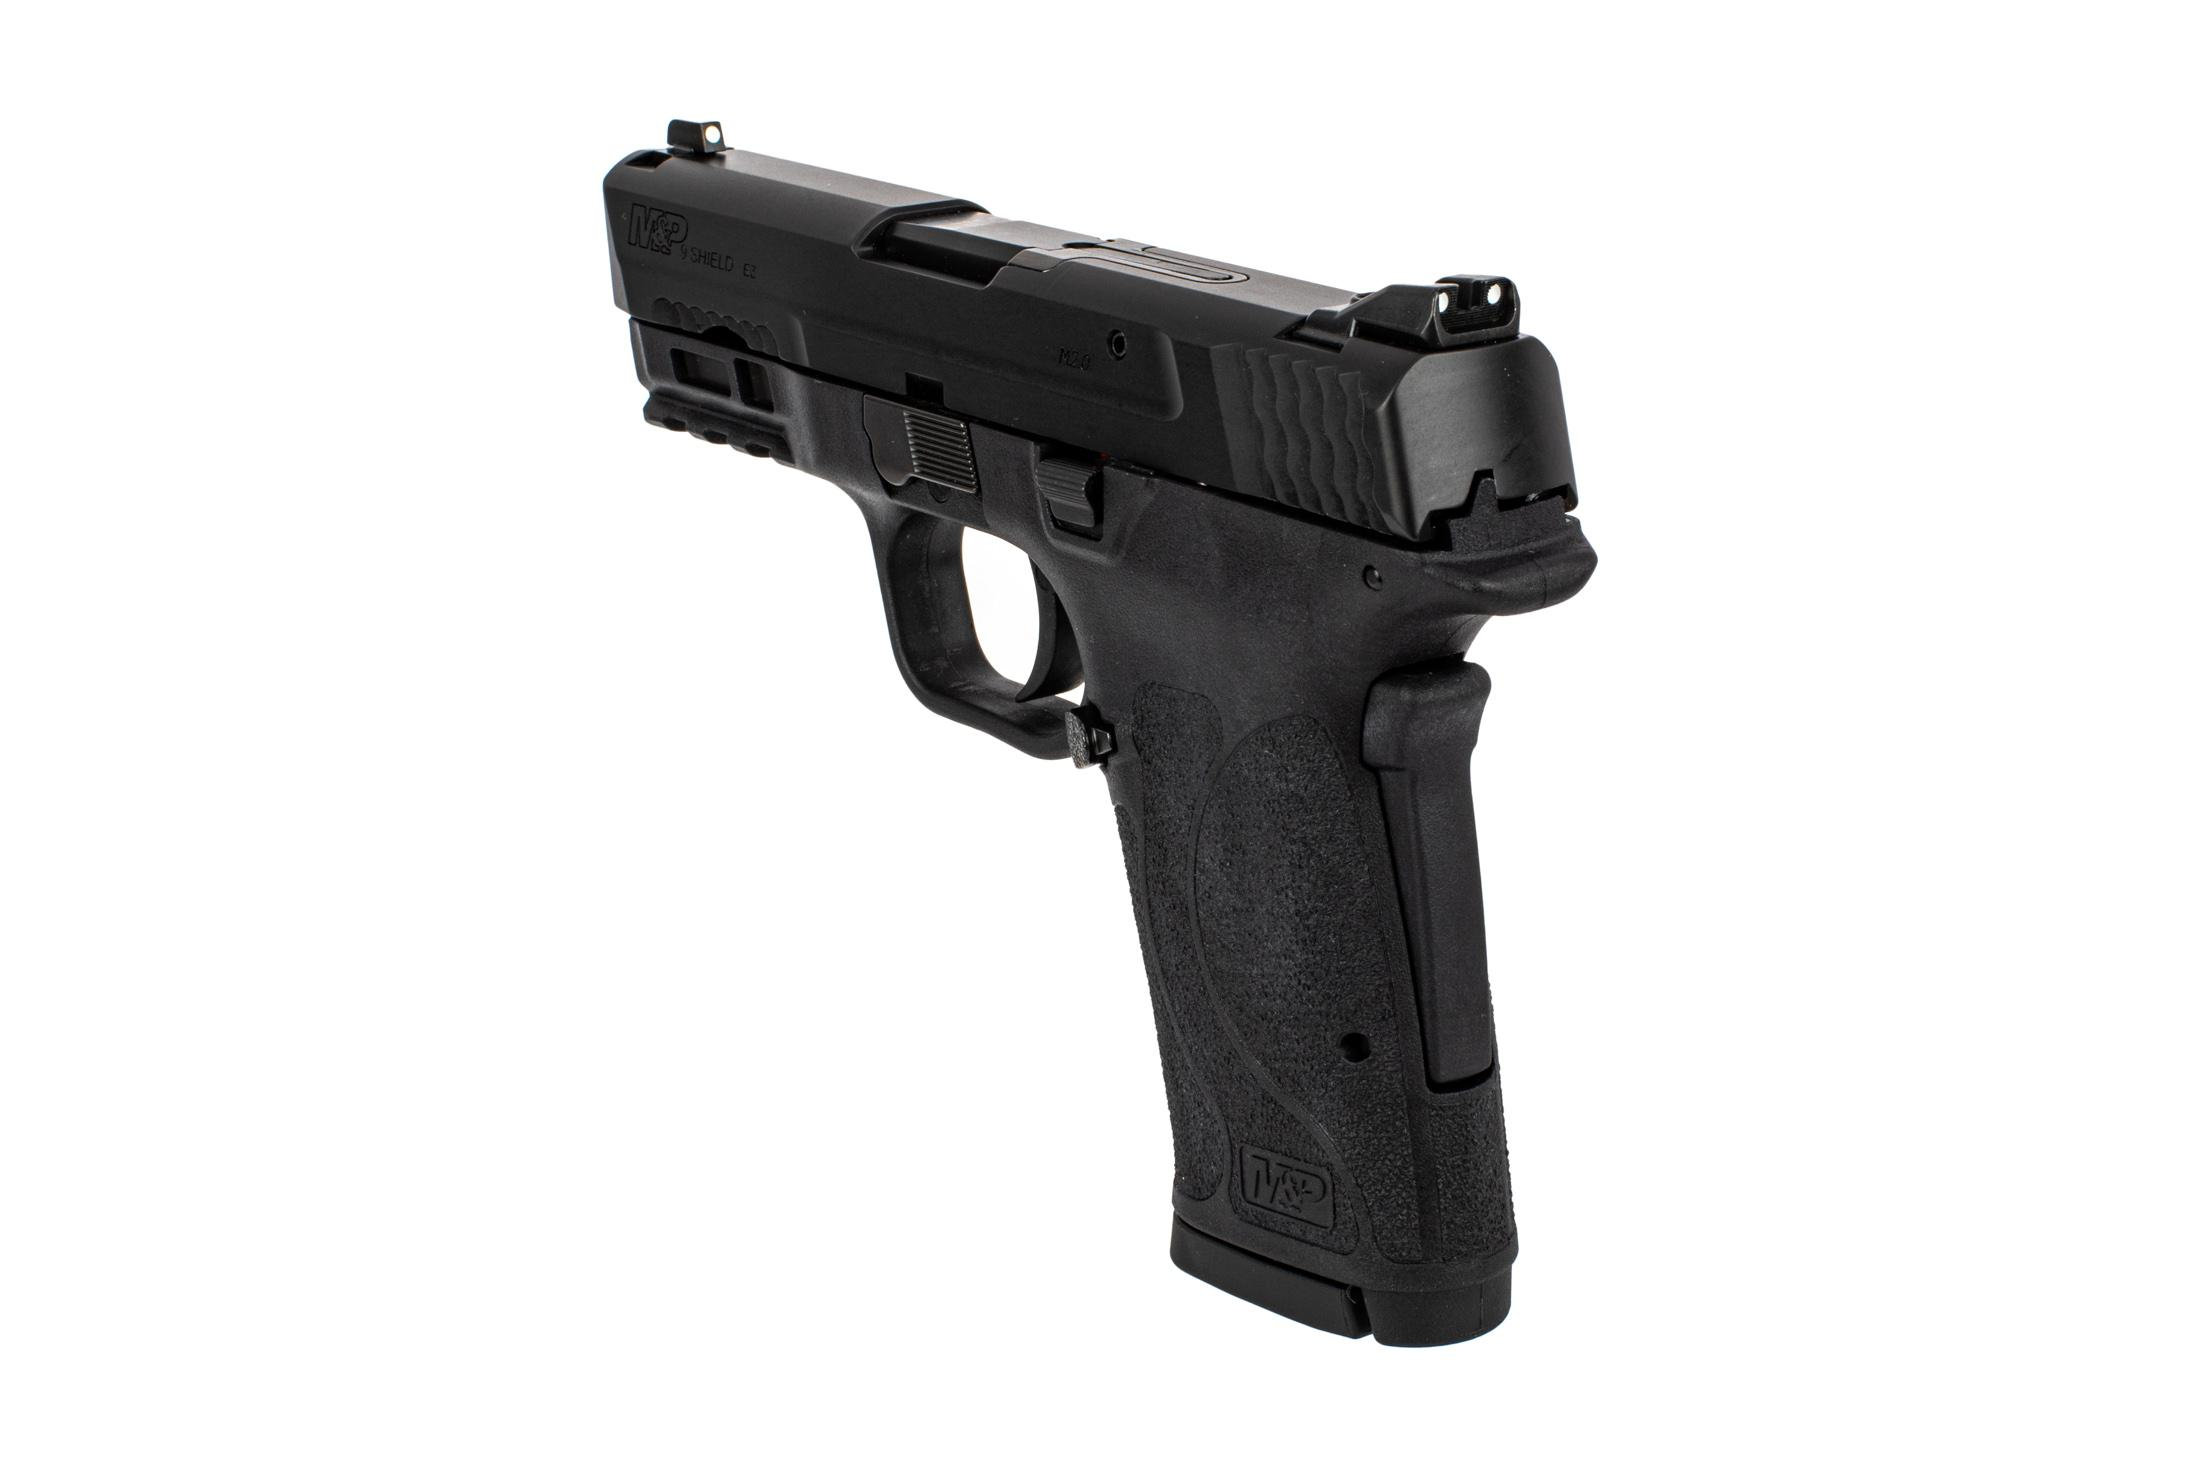 Smith & Wesson M&P 9 Shield EZ subcompact pistol without safety features steel sights